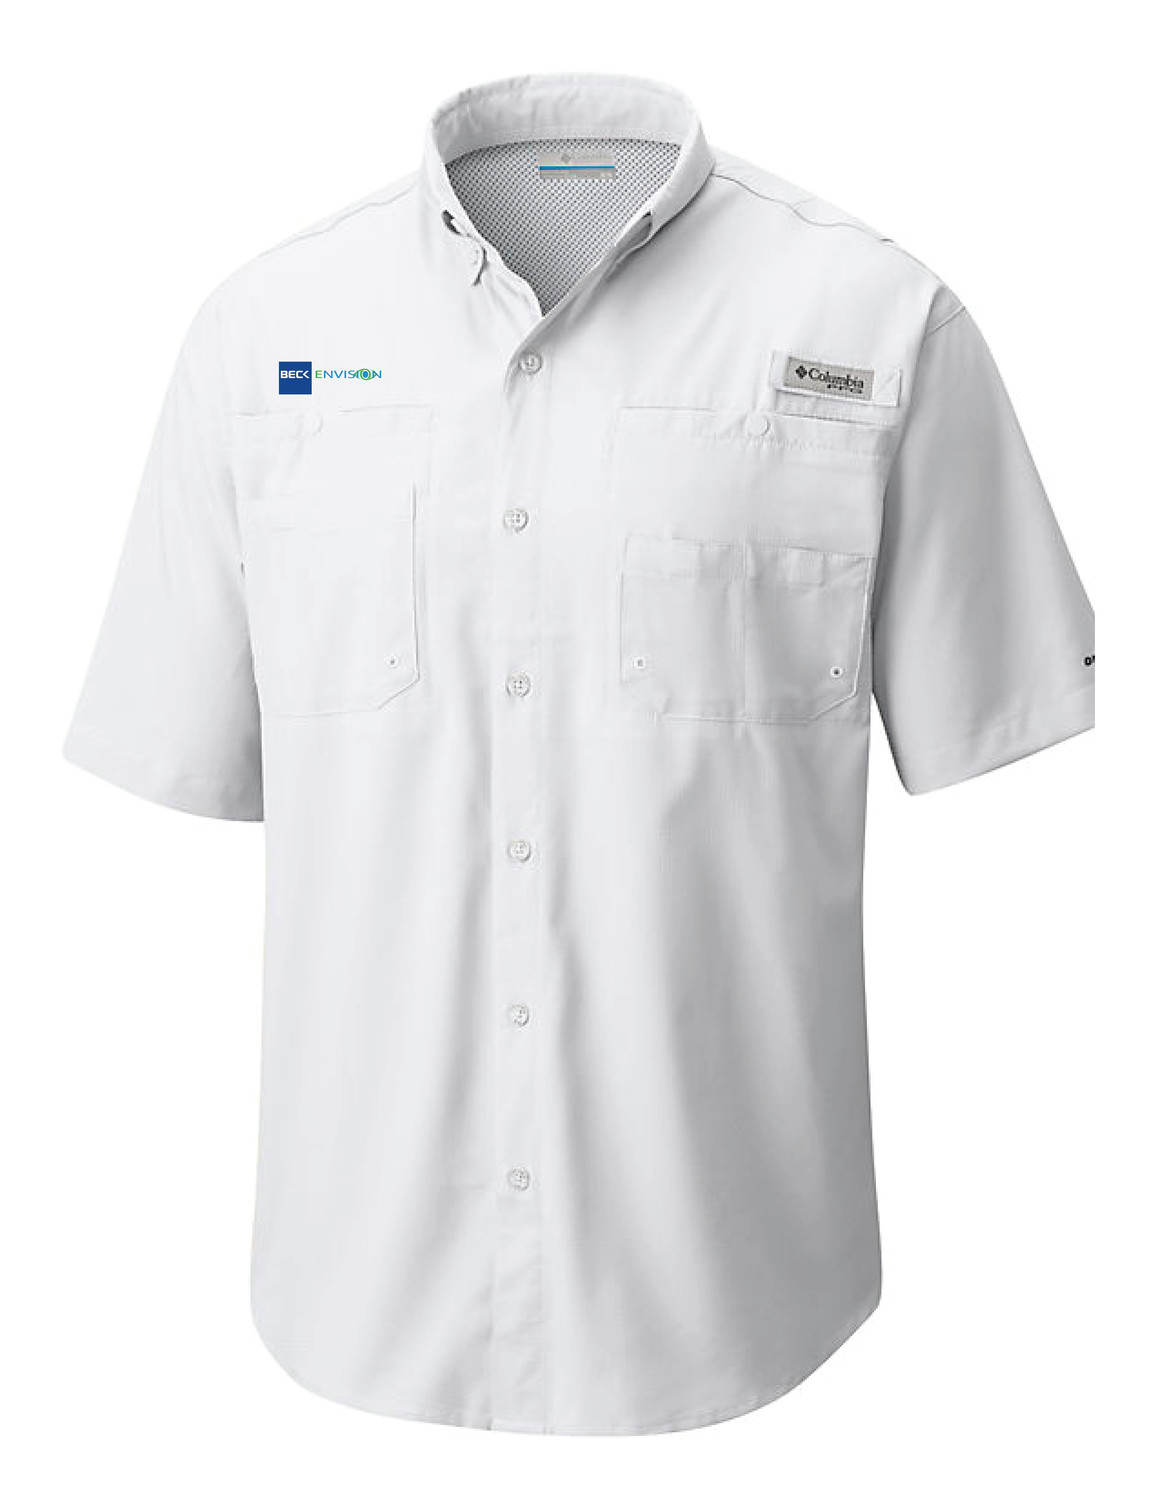 Beck-Envision Field: 7266 Columbia Men's Tamiami™ II Short-Sleeve Shirt